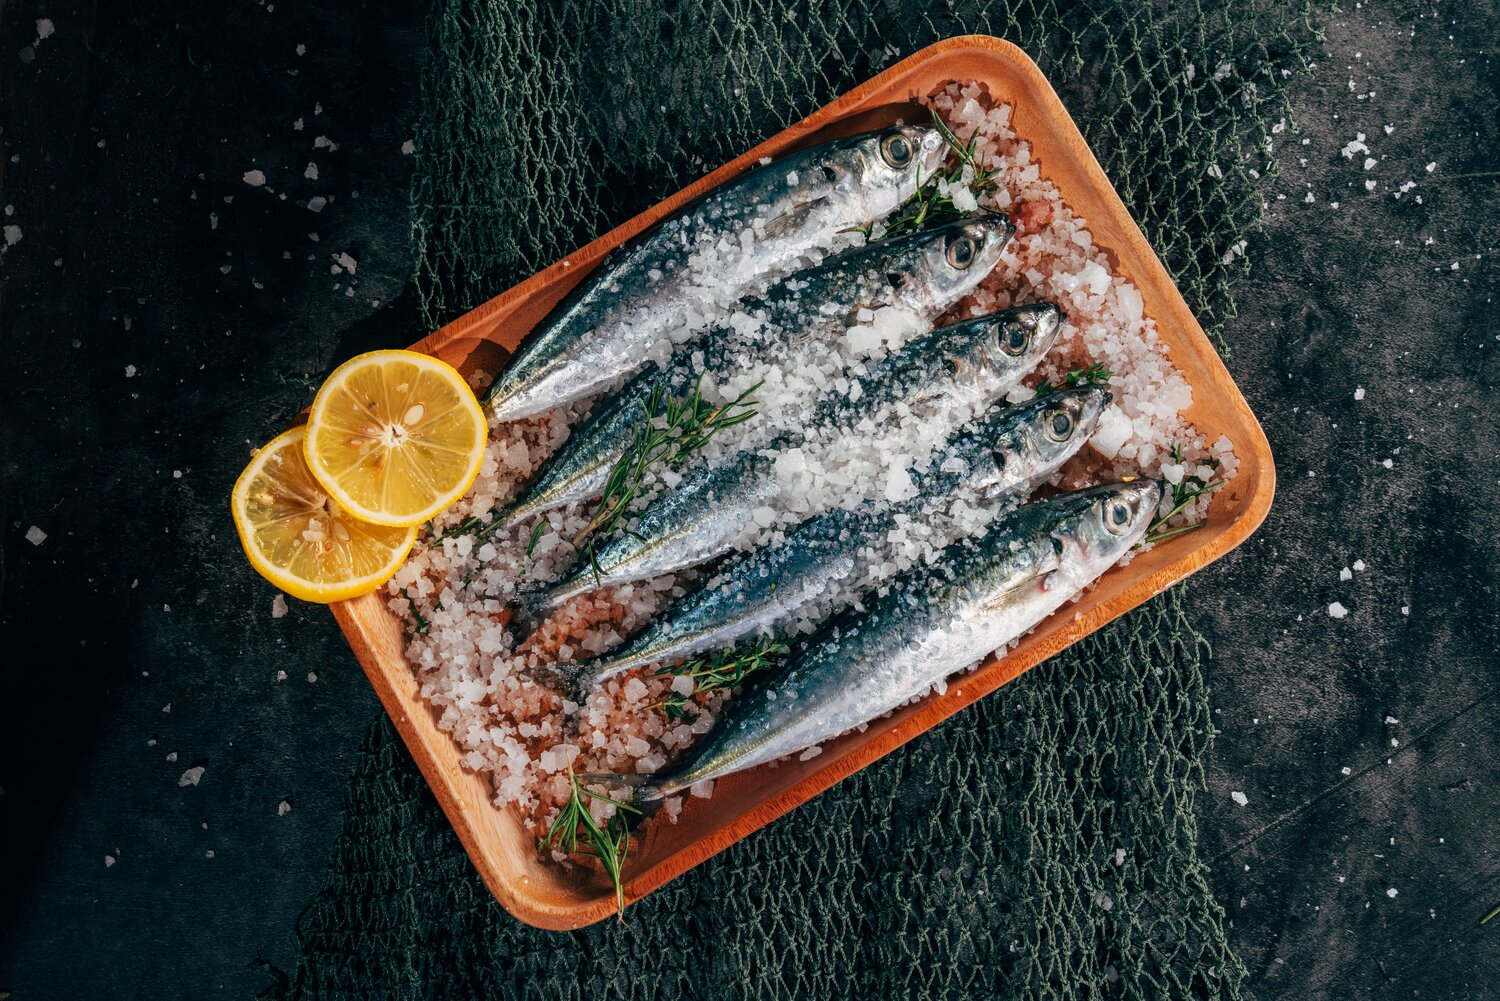 Sardines as a perfect source of omega-3 fatty acids